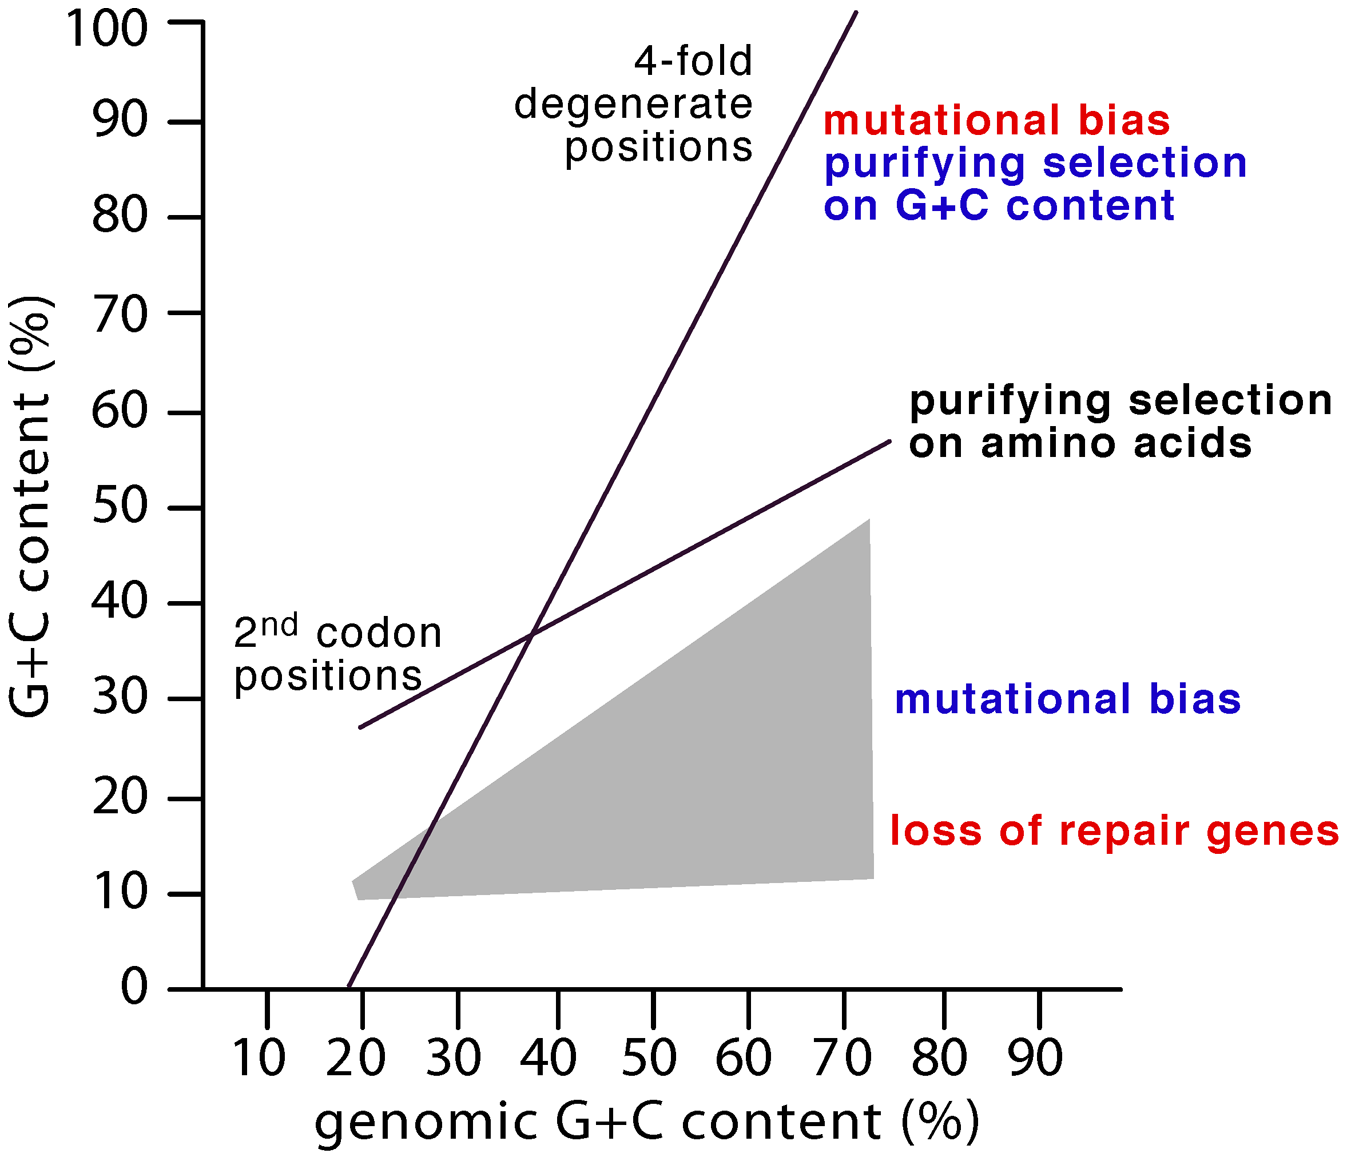 The GC composition of genomes is strongly correlated with second codon (GC<sub>2</sub>) and 4-fold degenerate positions (GC<sub>4</sub>) <em class=&quot;ref&quot;>[<b>2</b>]</em>.